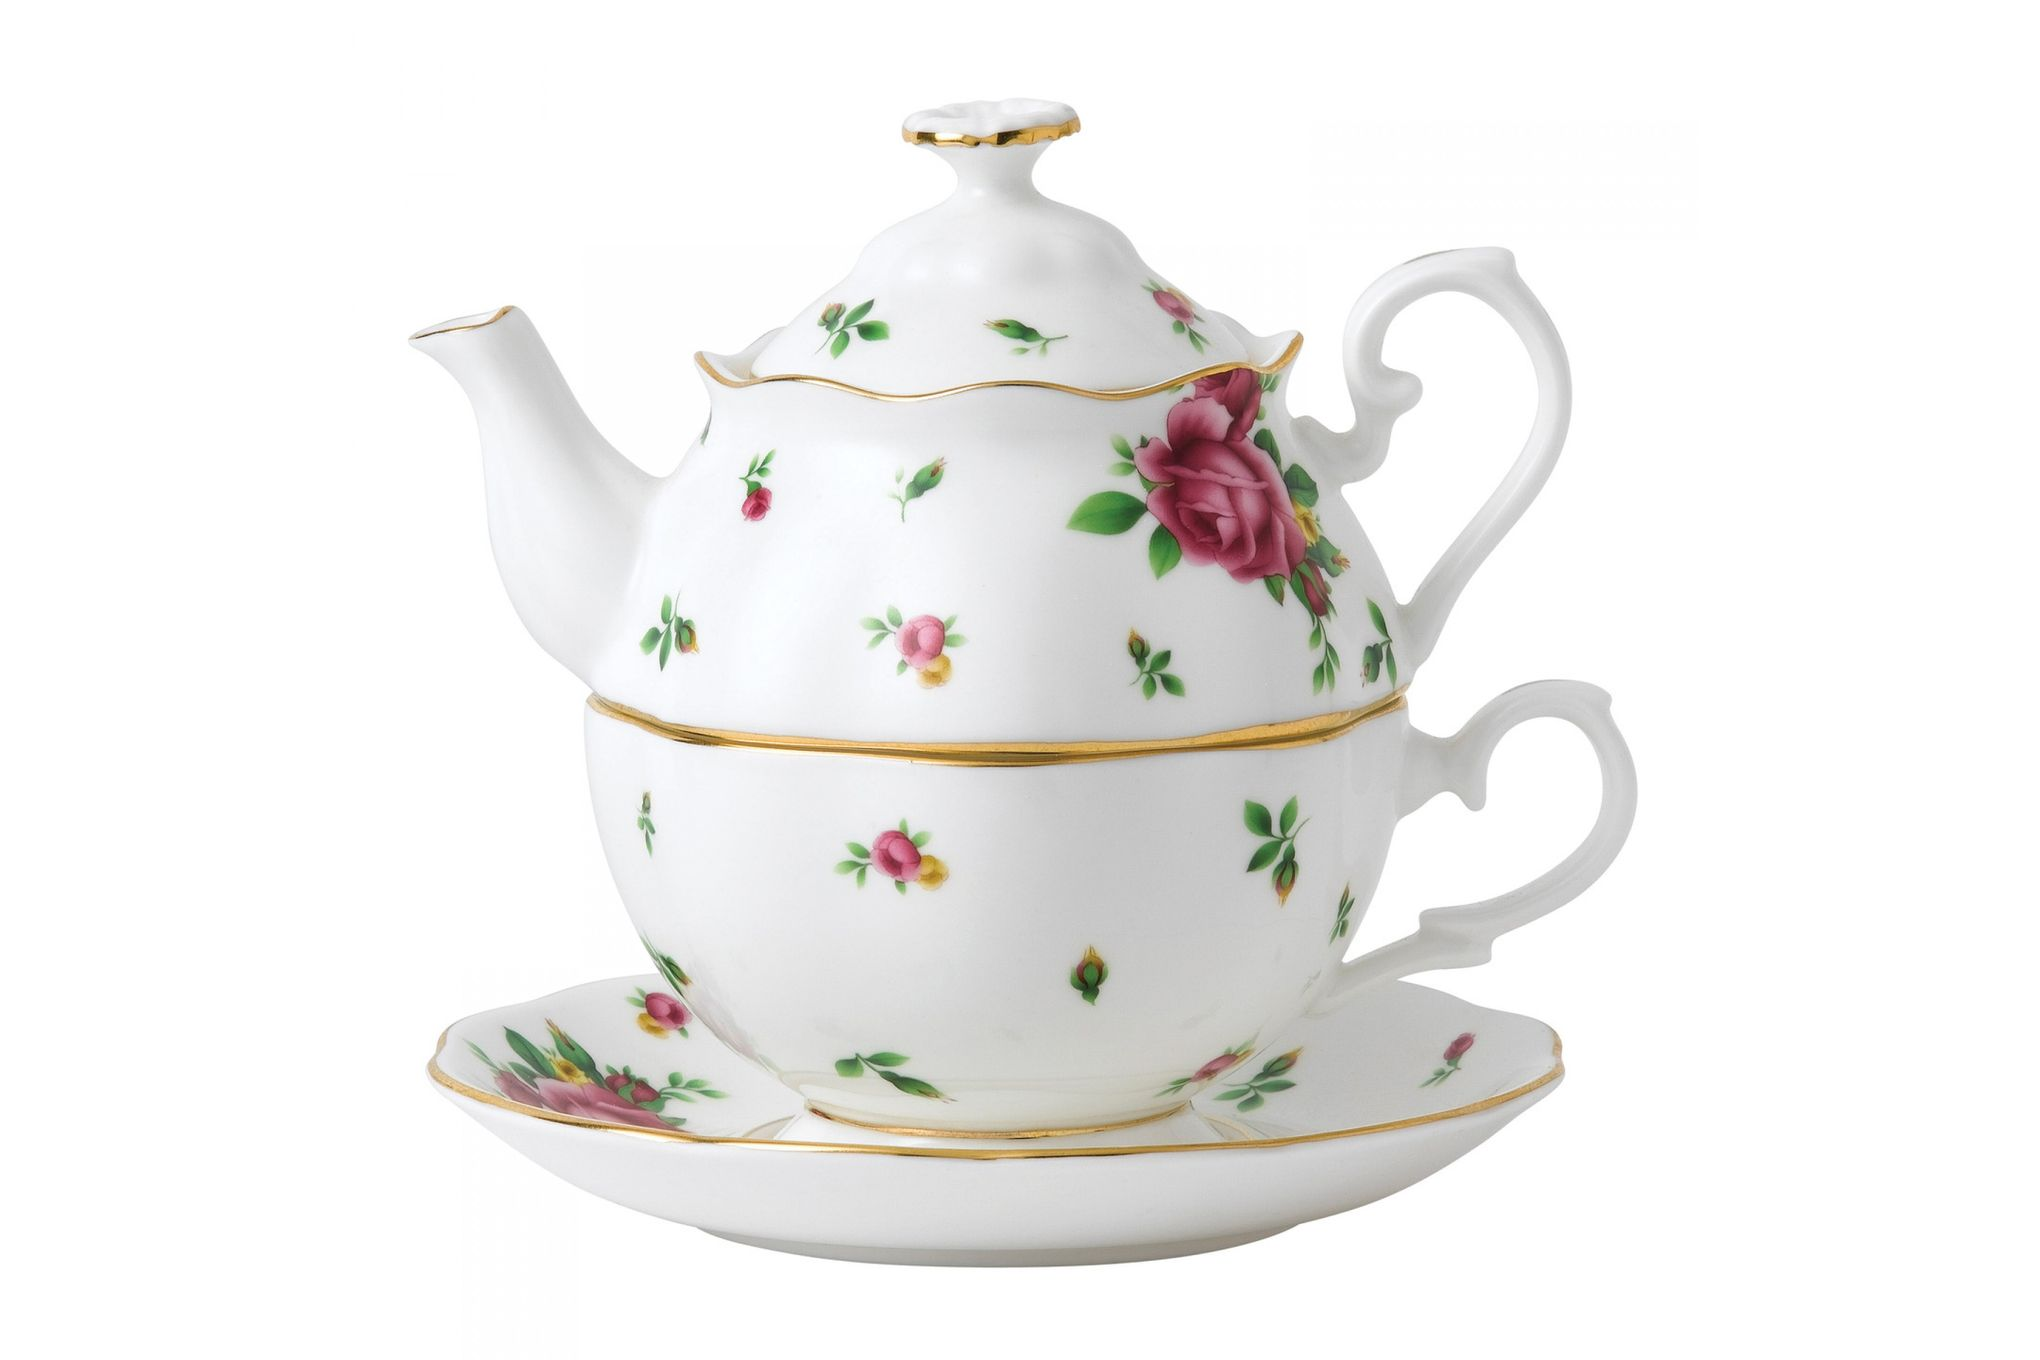 Royal Albert New Country Roses White Tea For One thumb 1